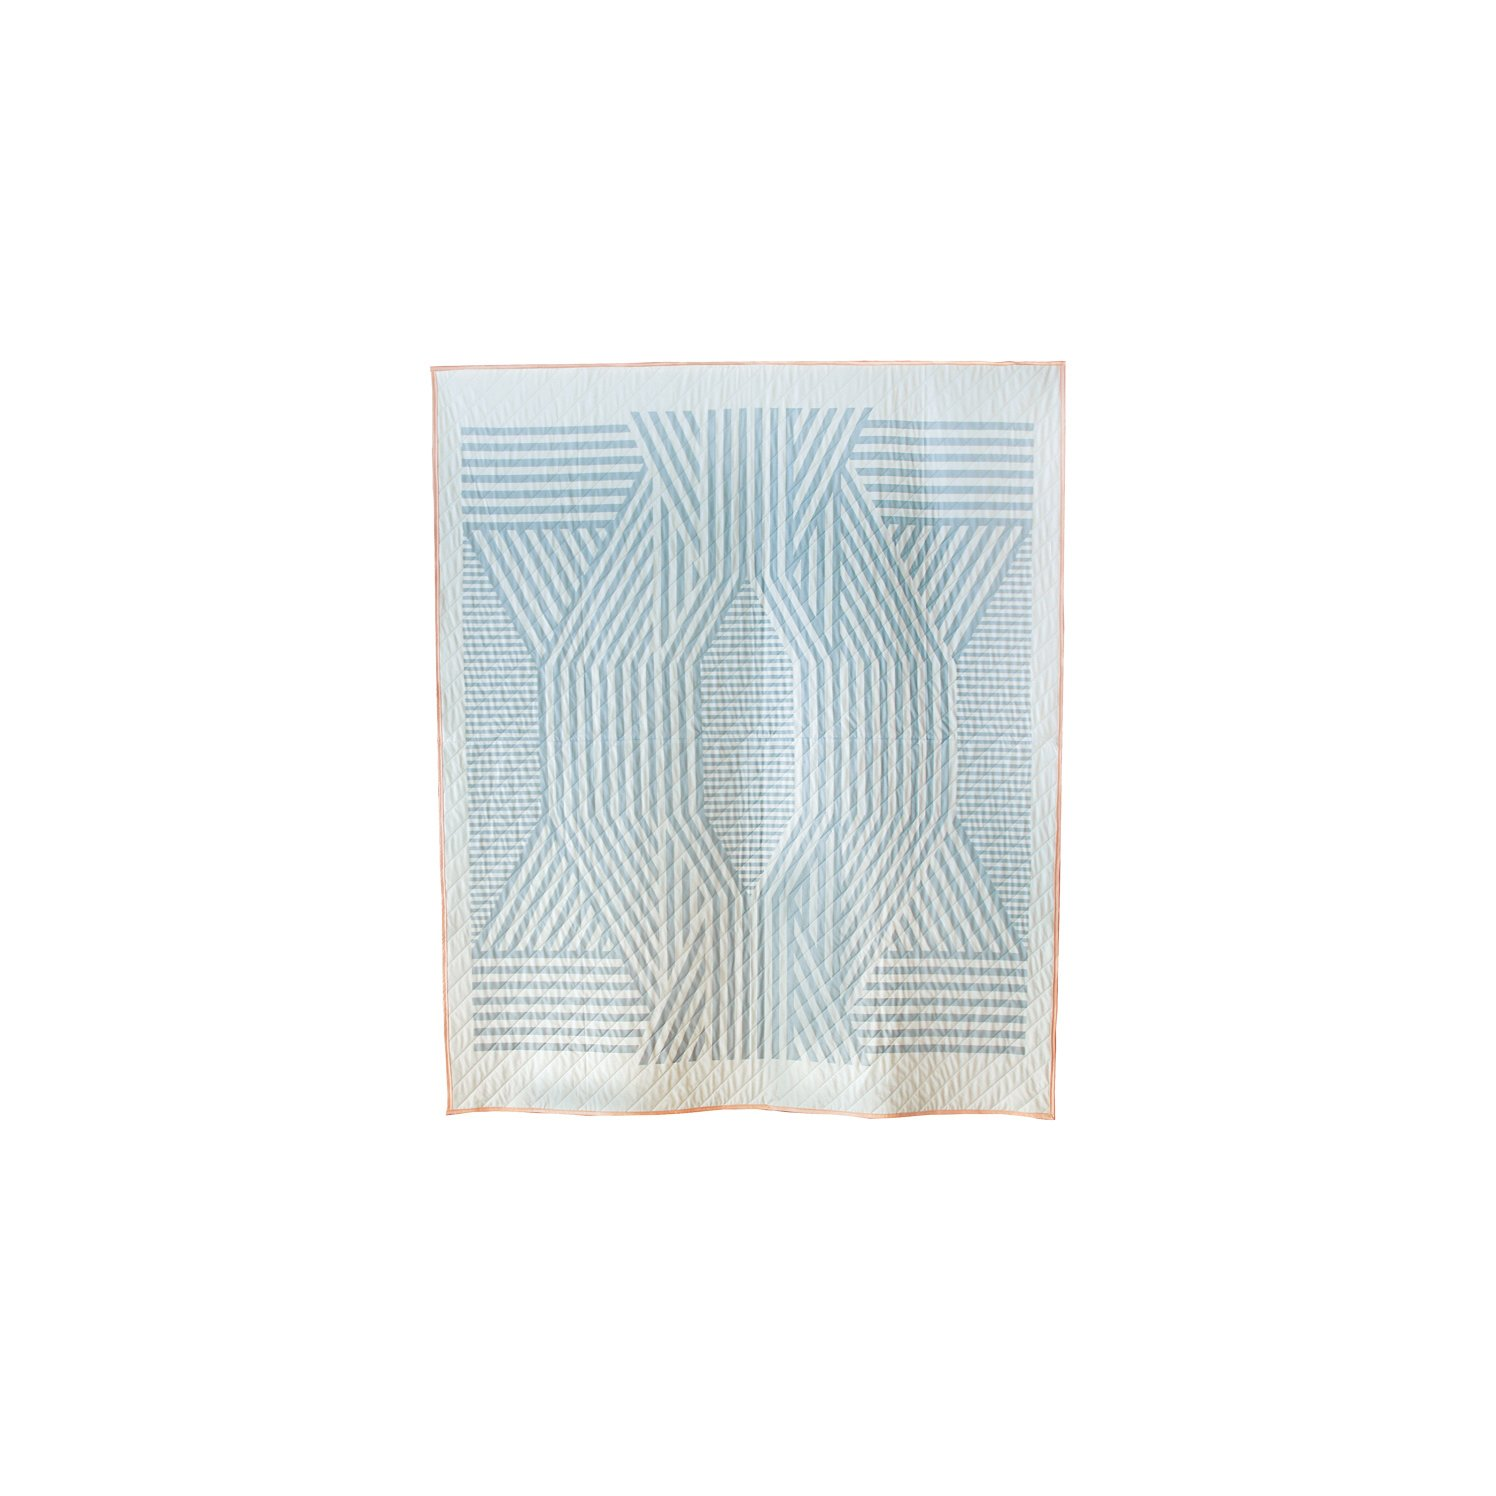 The pale blue Ada quilt is a perfectly symmetrical pattern thanks to Callahan's digital printing techniques. Available through the Dwell Store, $600.  Quilts for Modern Bedrooms by Olivia Martin